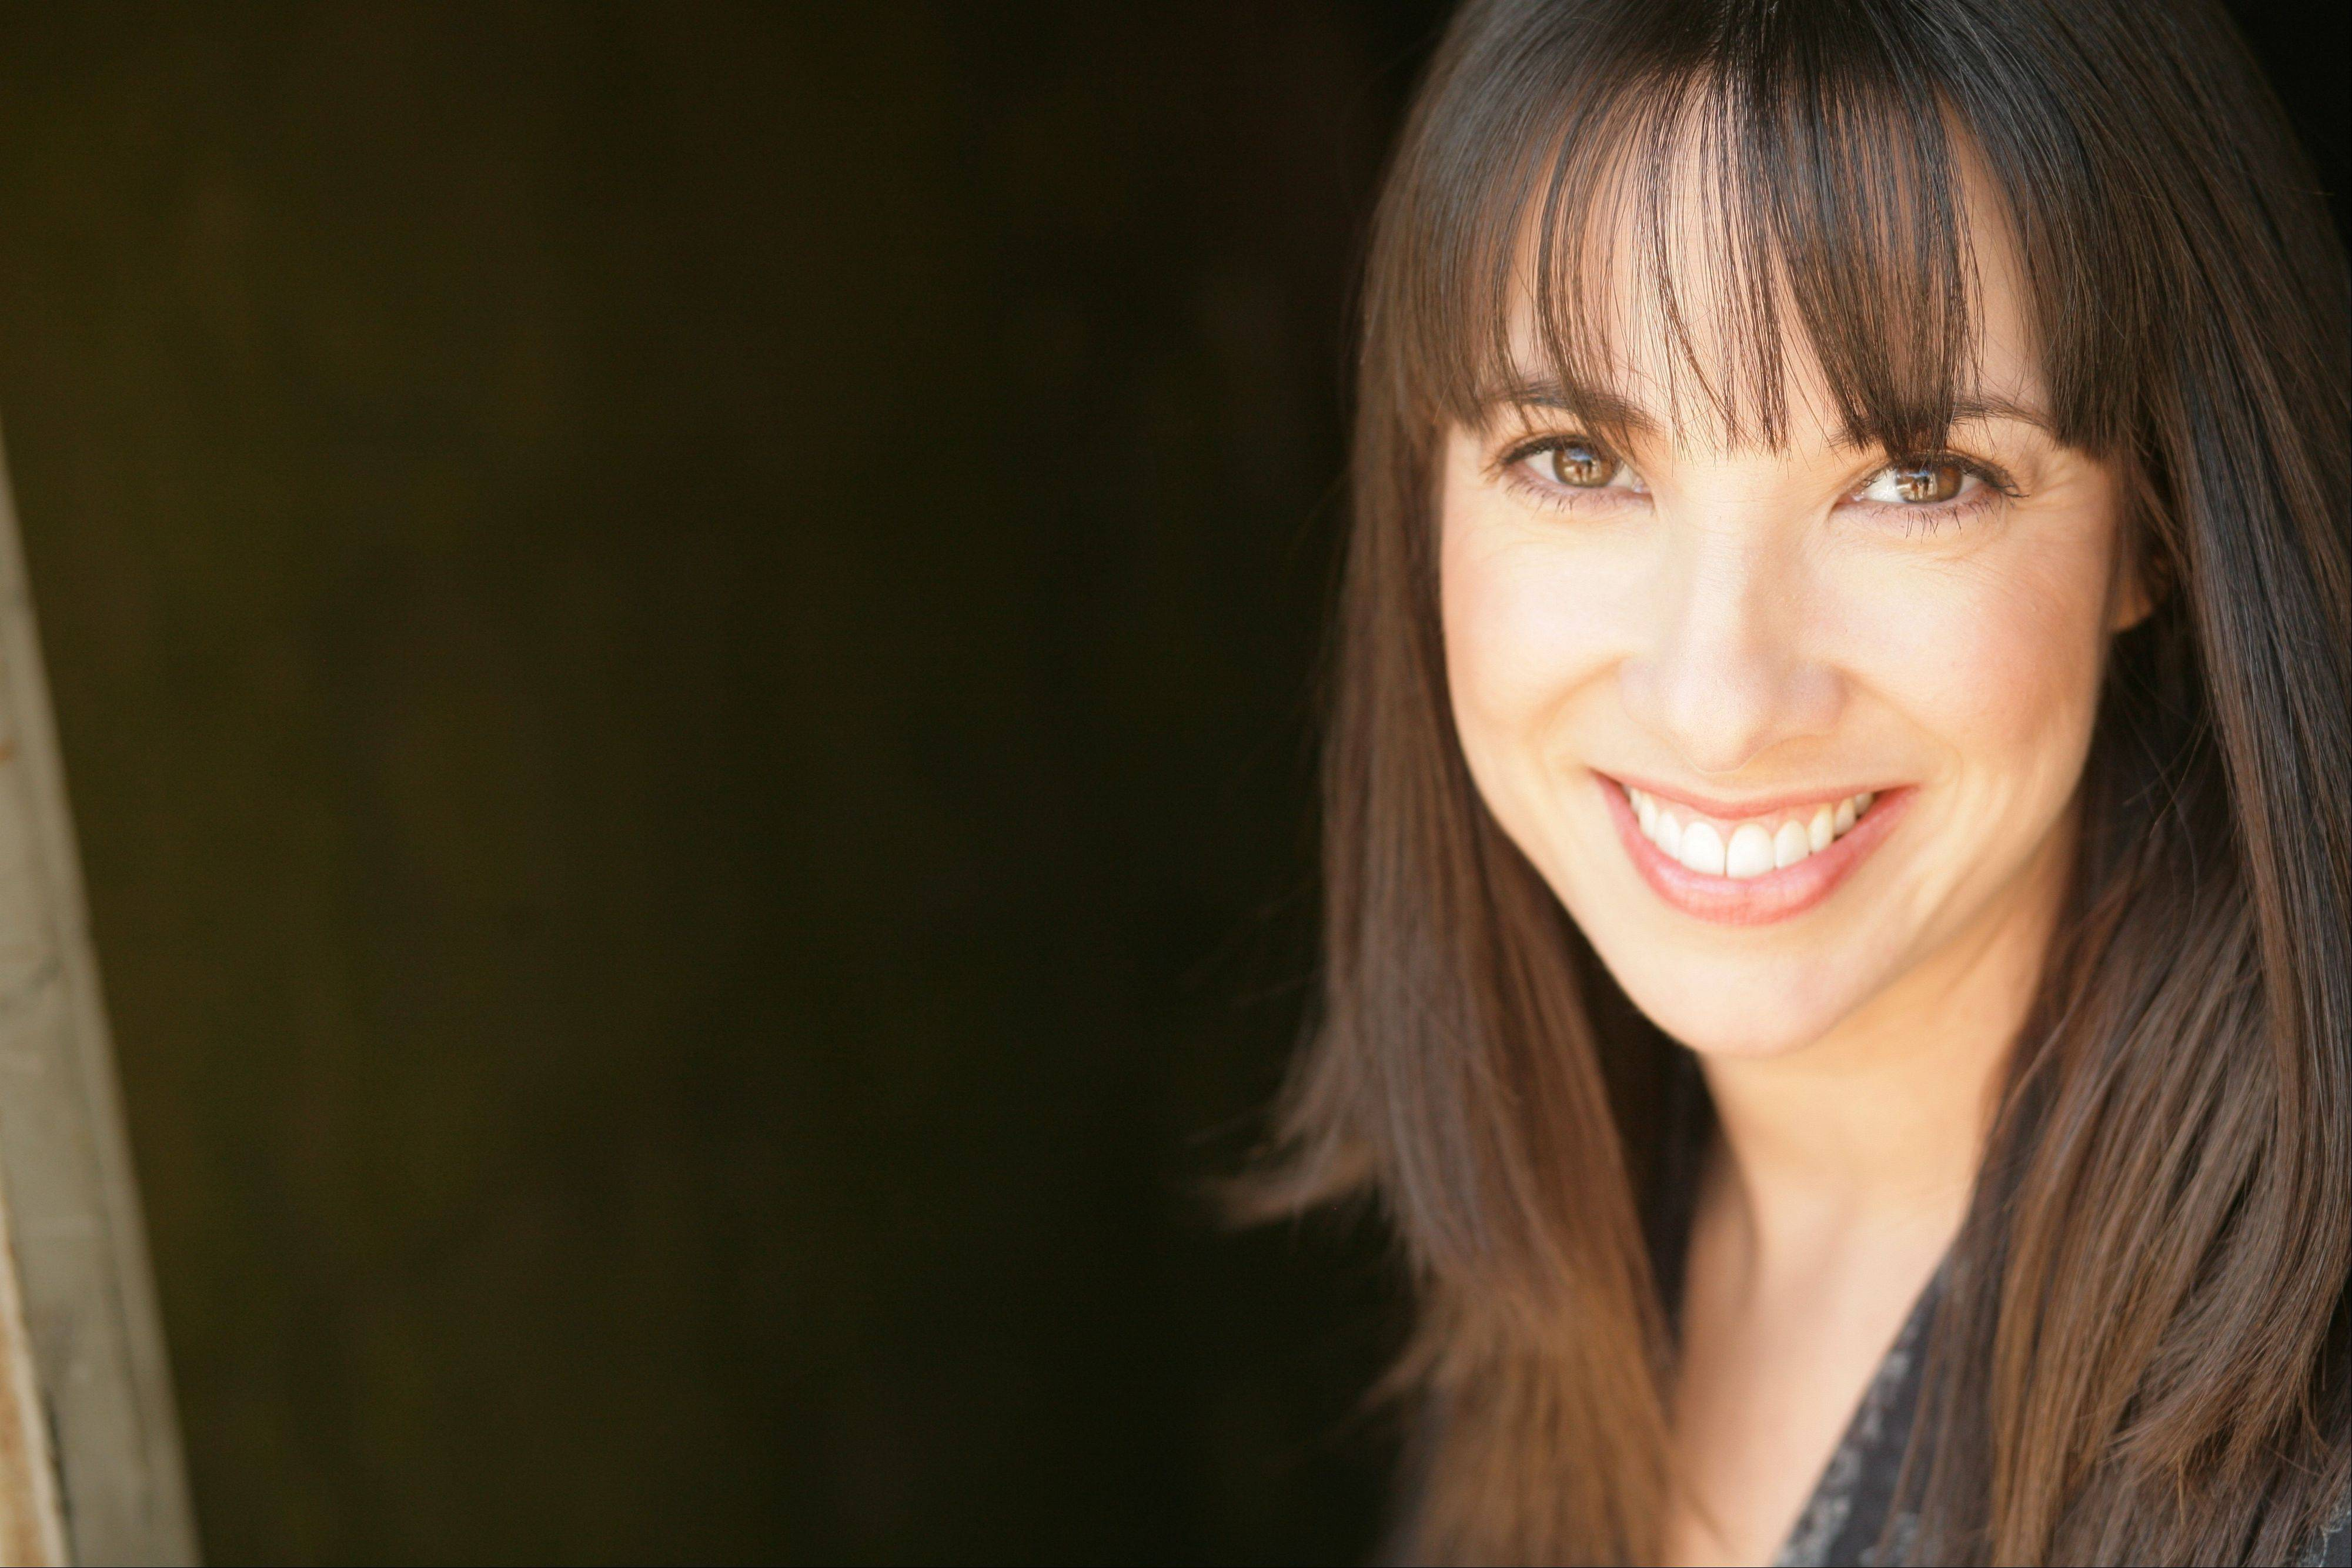 Patti Vasquez hits the stage at the Raue Center for the Arts in Crystal Lake on Friday, Oct. 18.